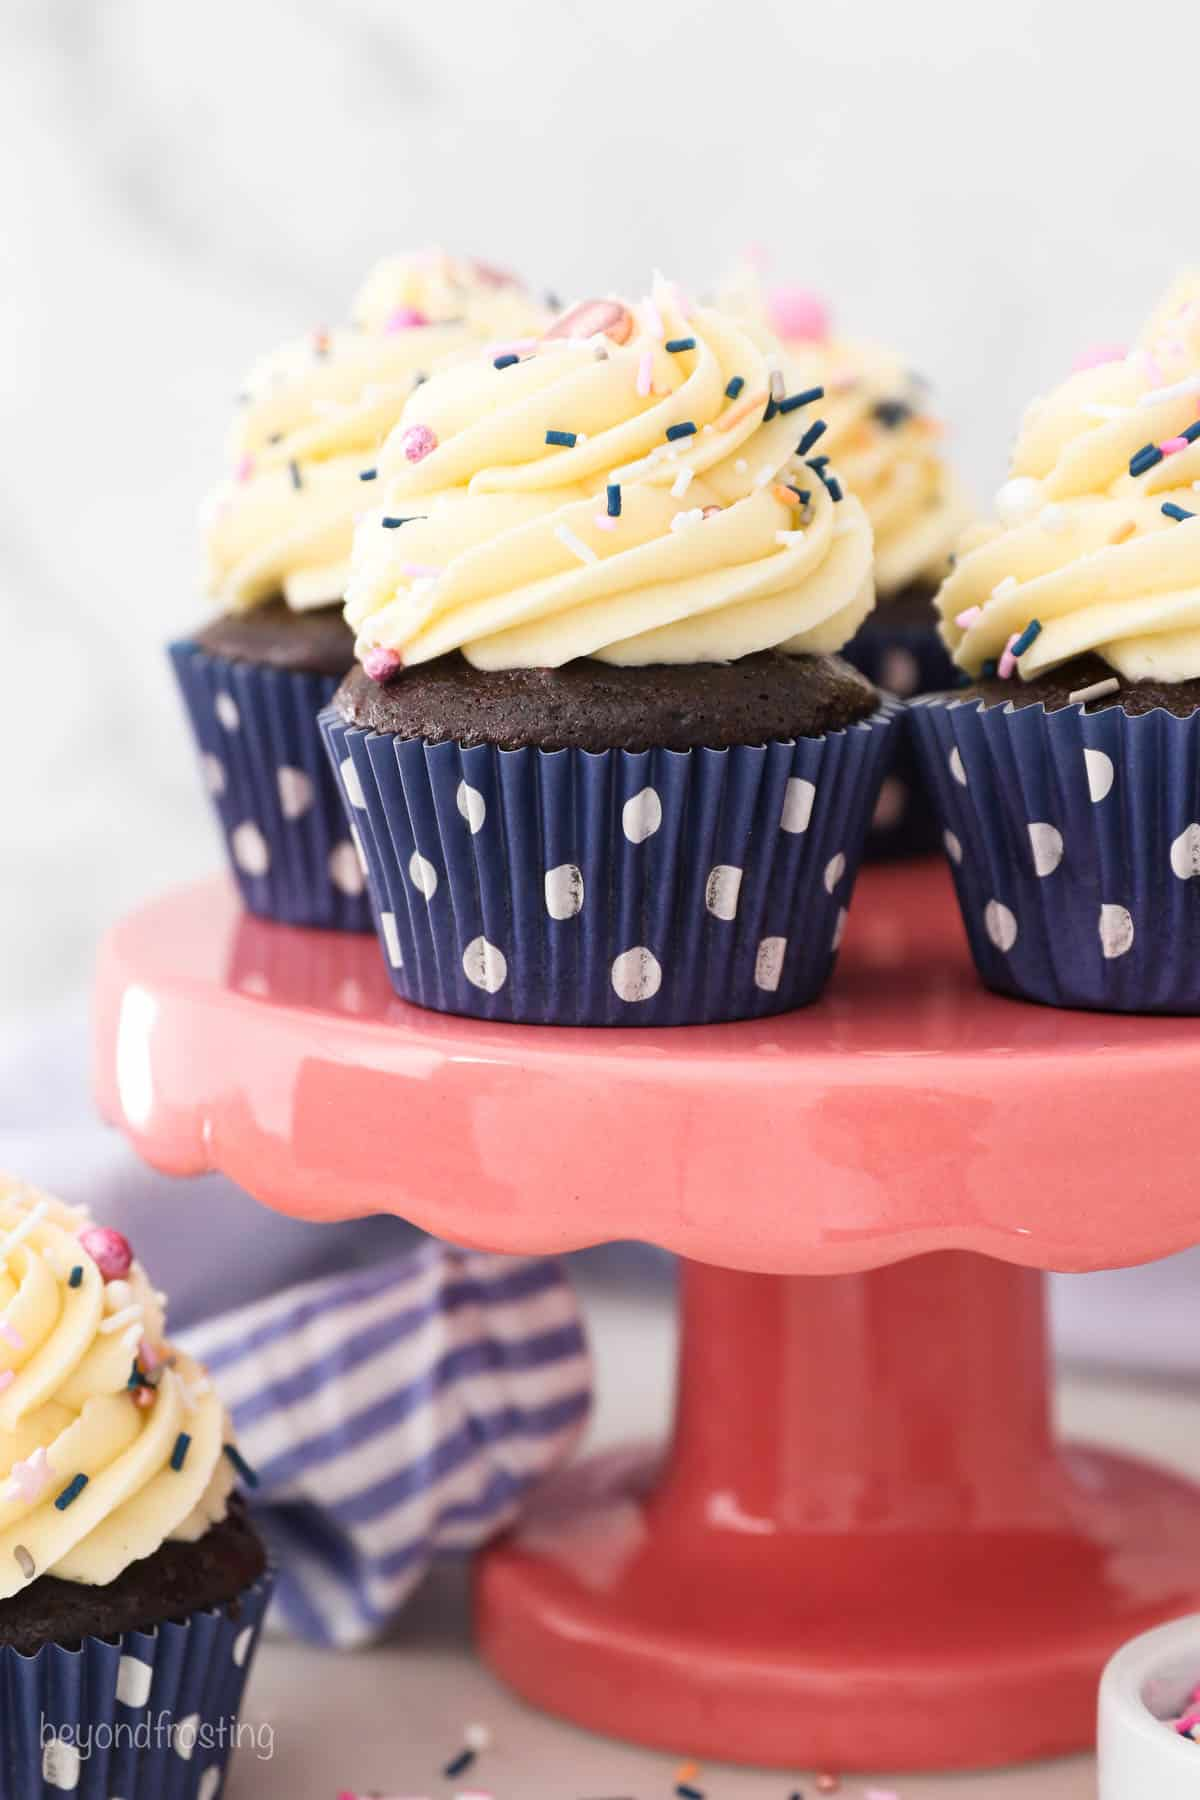 A pink cake stand with chocolate frosted cupcakes in navy blue polka dot wrappers